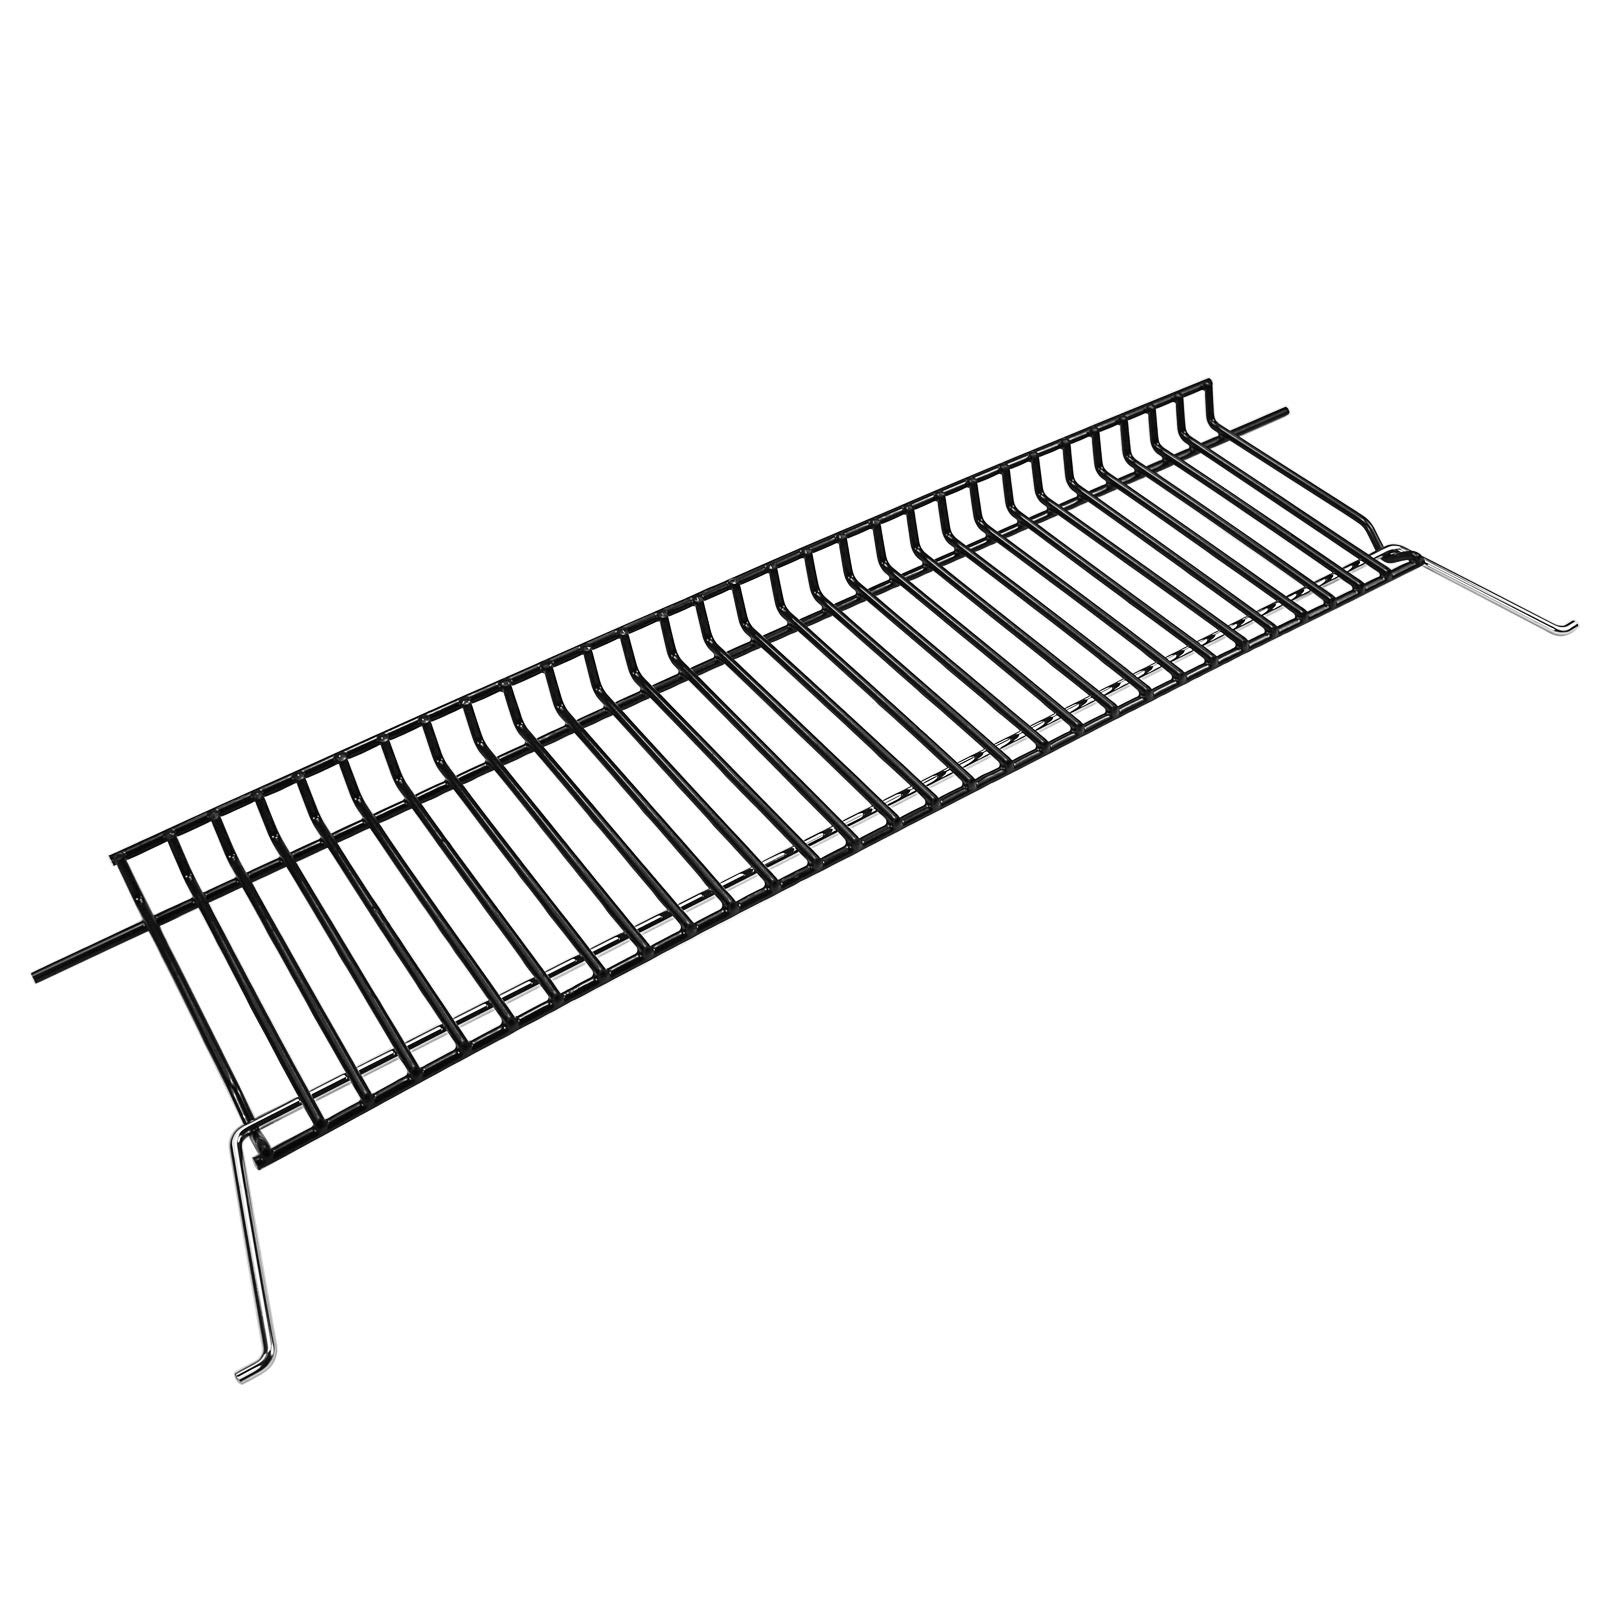 Hisencn Grill Warming Rack for Charbroil Advantage Series 4 Burner 463344116, 466344116 Gas Grill Models, 27 7/10 inch Porcelain Steel Warming Grates for Charbroil G469-0004-W1